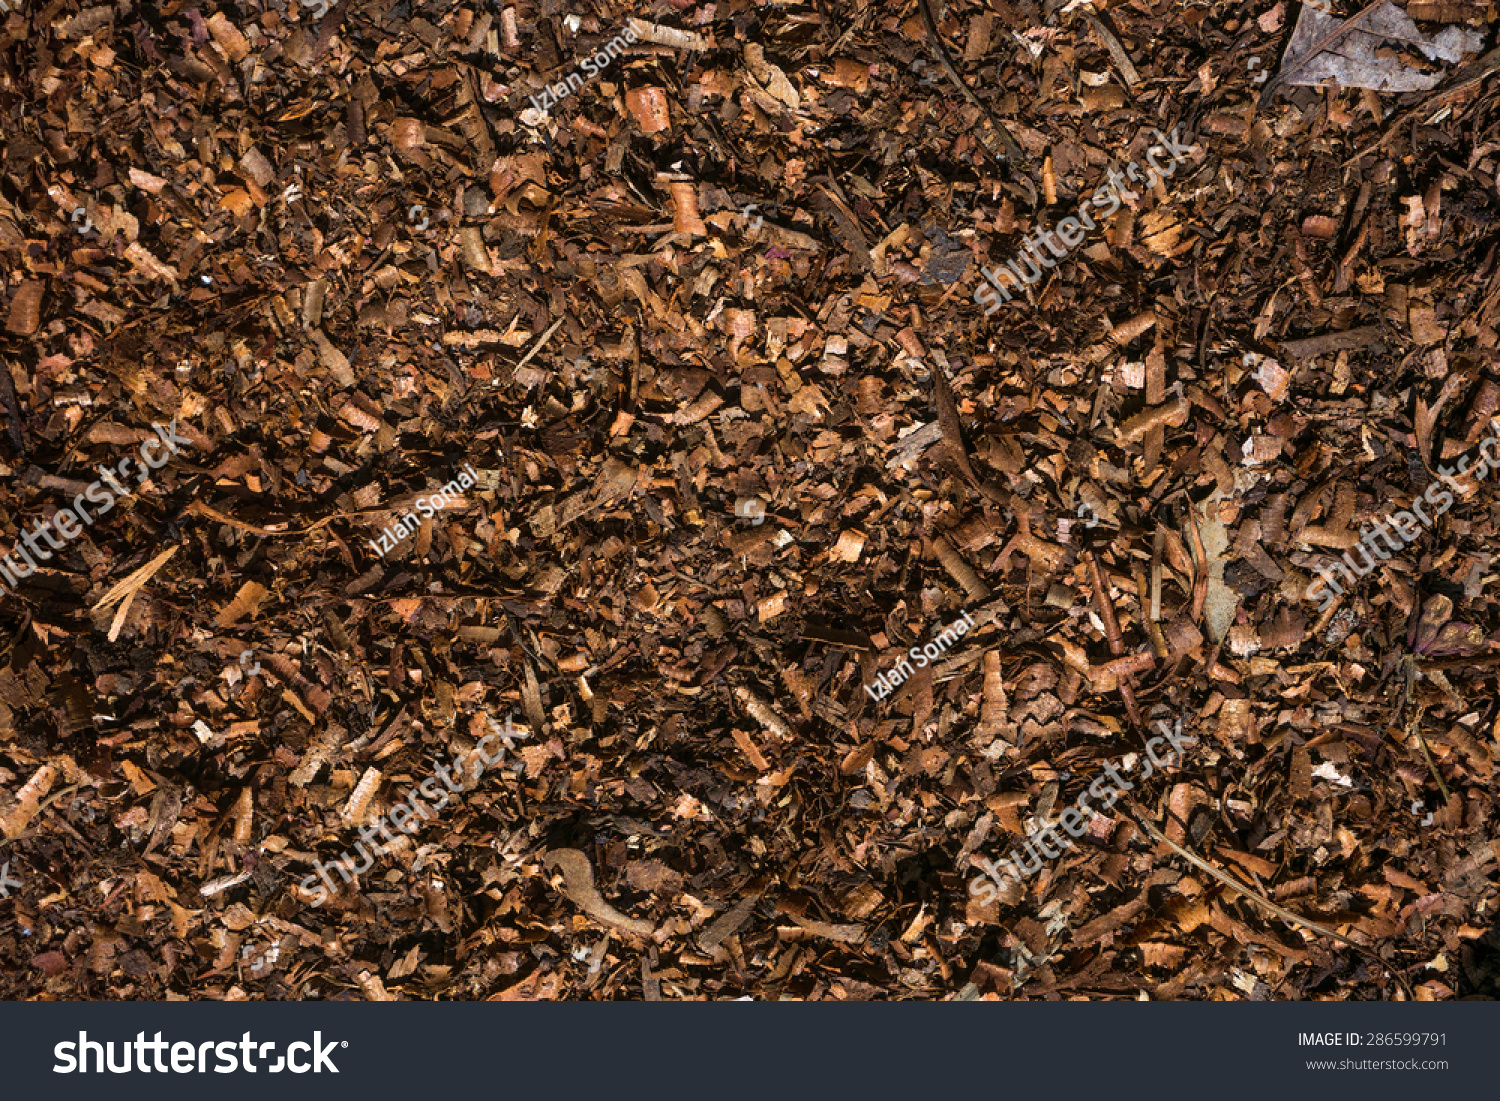 Royalty Free Fresh Wet Wood Chip From Alder Tree 286599791 Stock